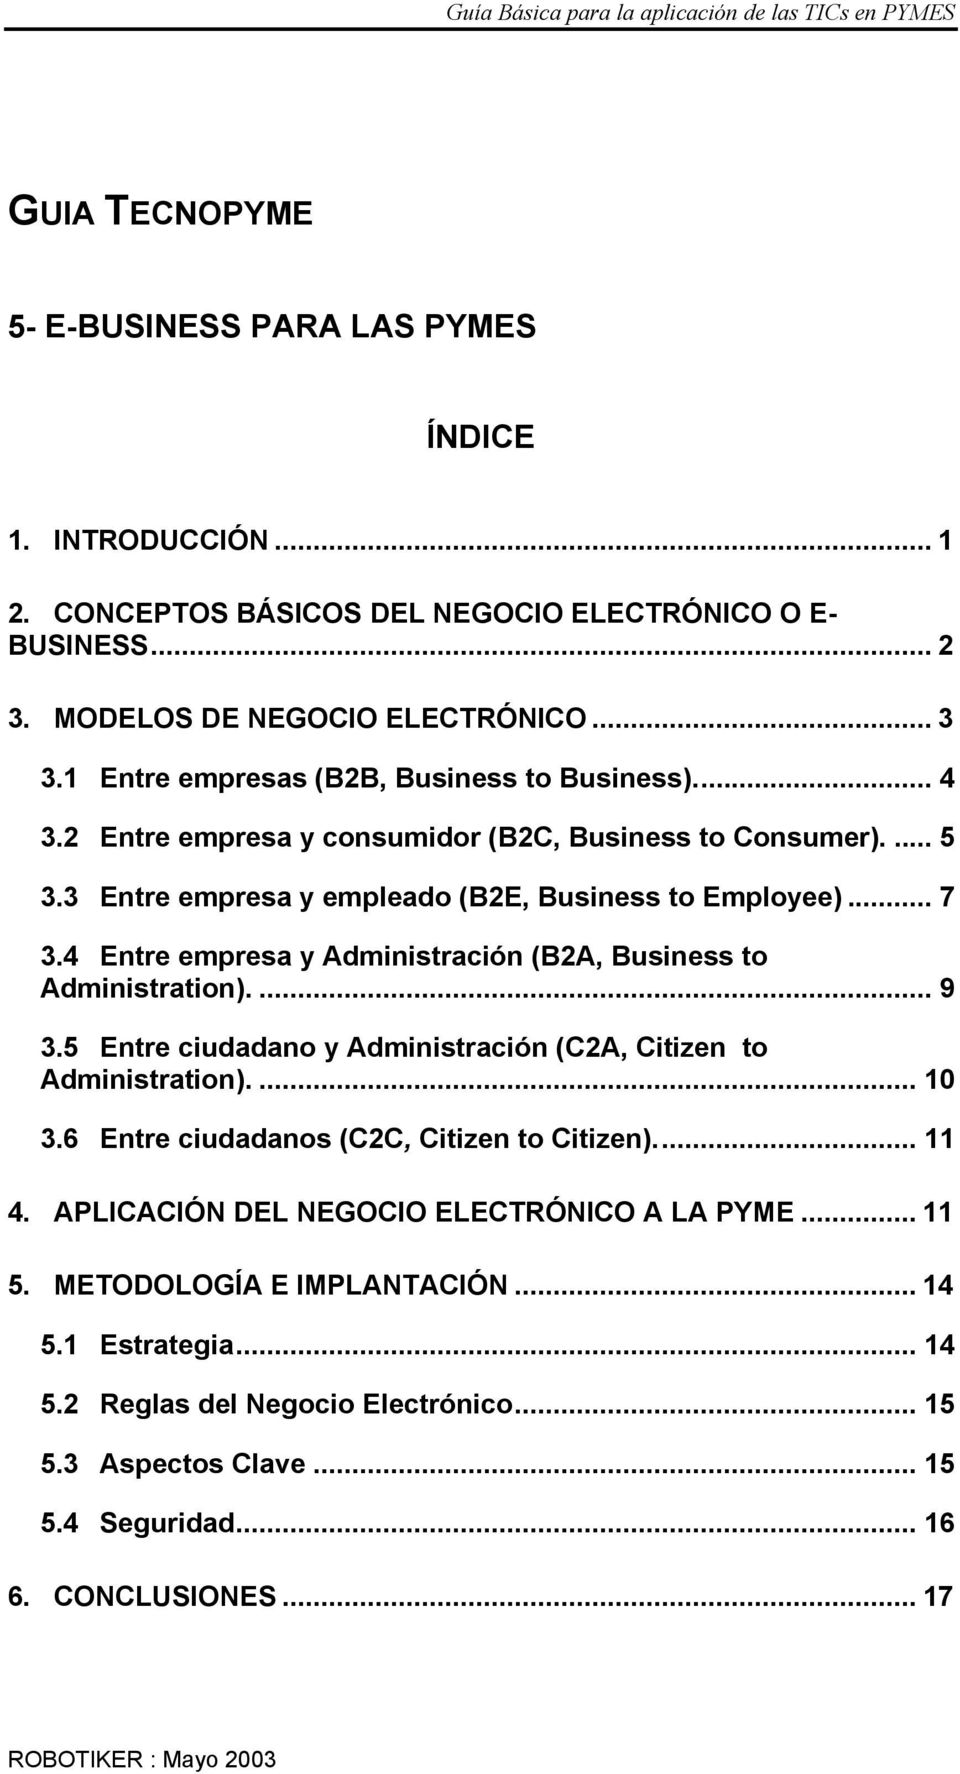 4 Entre empresa y Administración (B2A, Business to Administration).... 9 3.5 Entre ciudadano y Administración (C2A, Citizen to Administration).... 10 3.6 Entre ciudadanos (C2C, Citizen to Citizen).